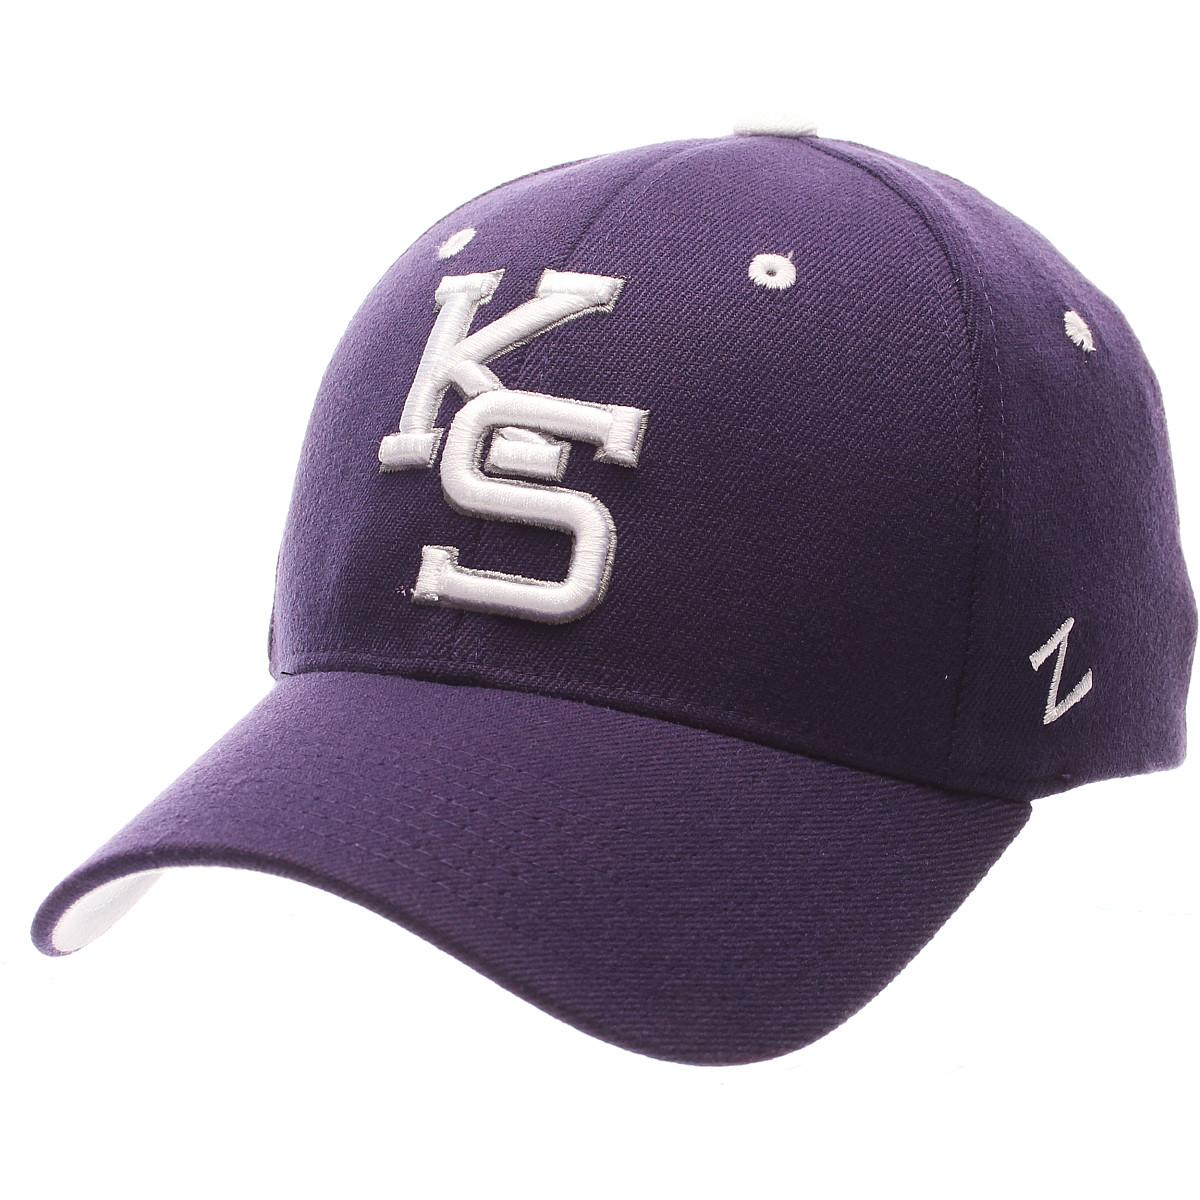 Details about ZEPHYR MEN S KANSAS STATE WILDCATS ZH ZWOOL STRETCH FIT HAT c7fa380e0393